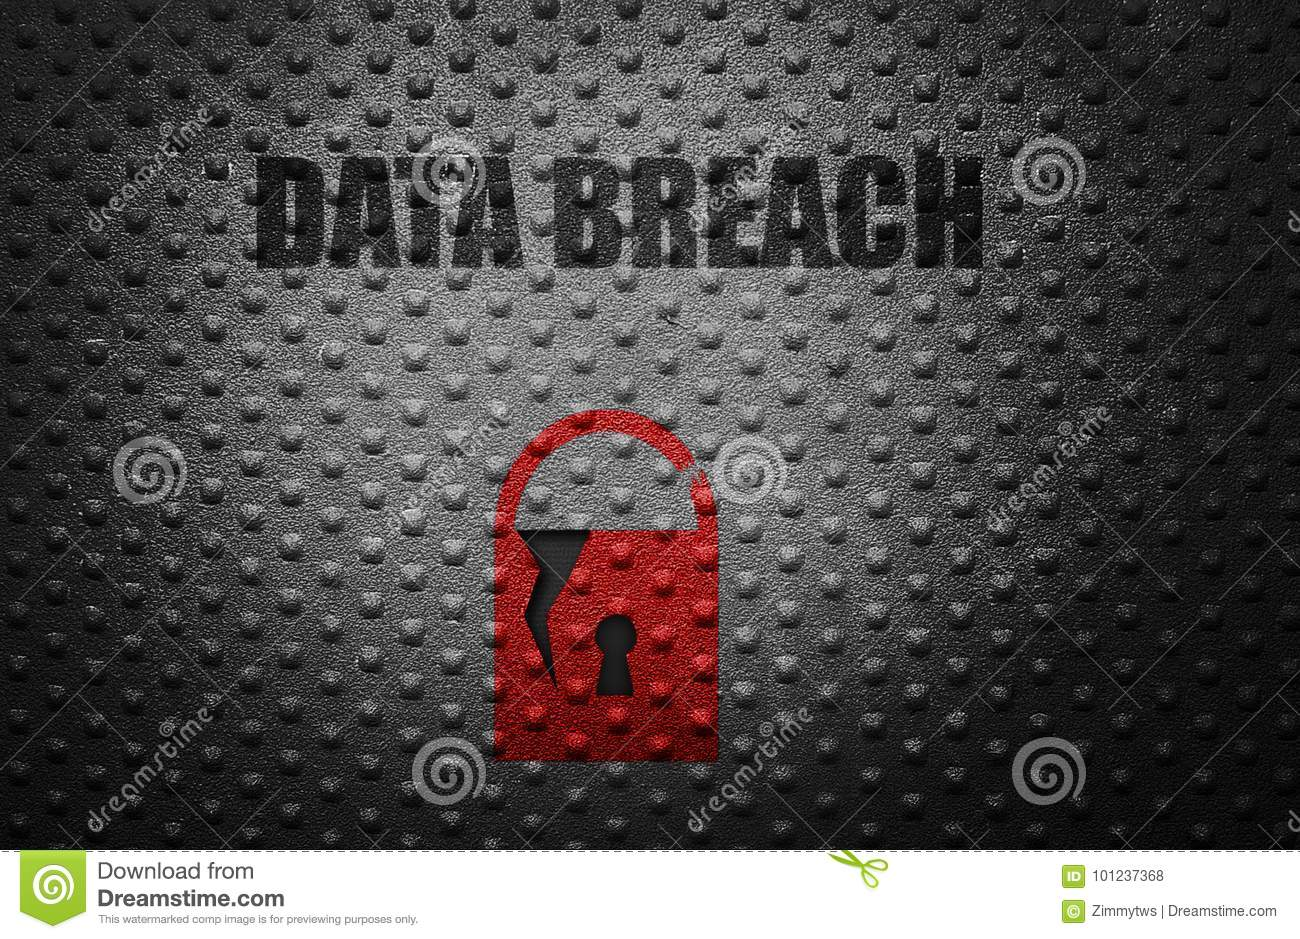 Data breach concept